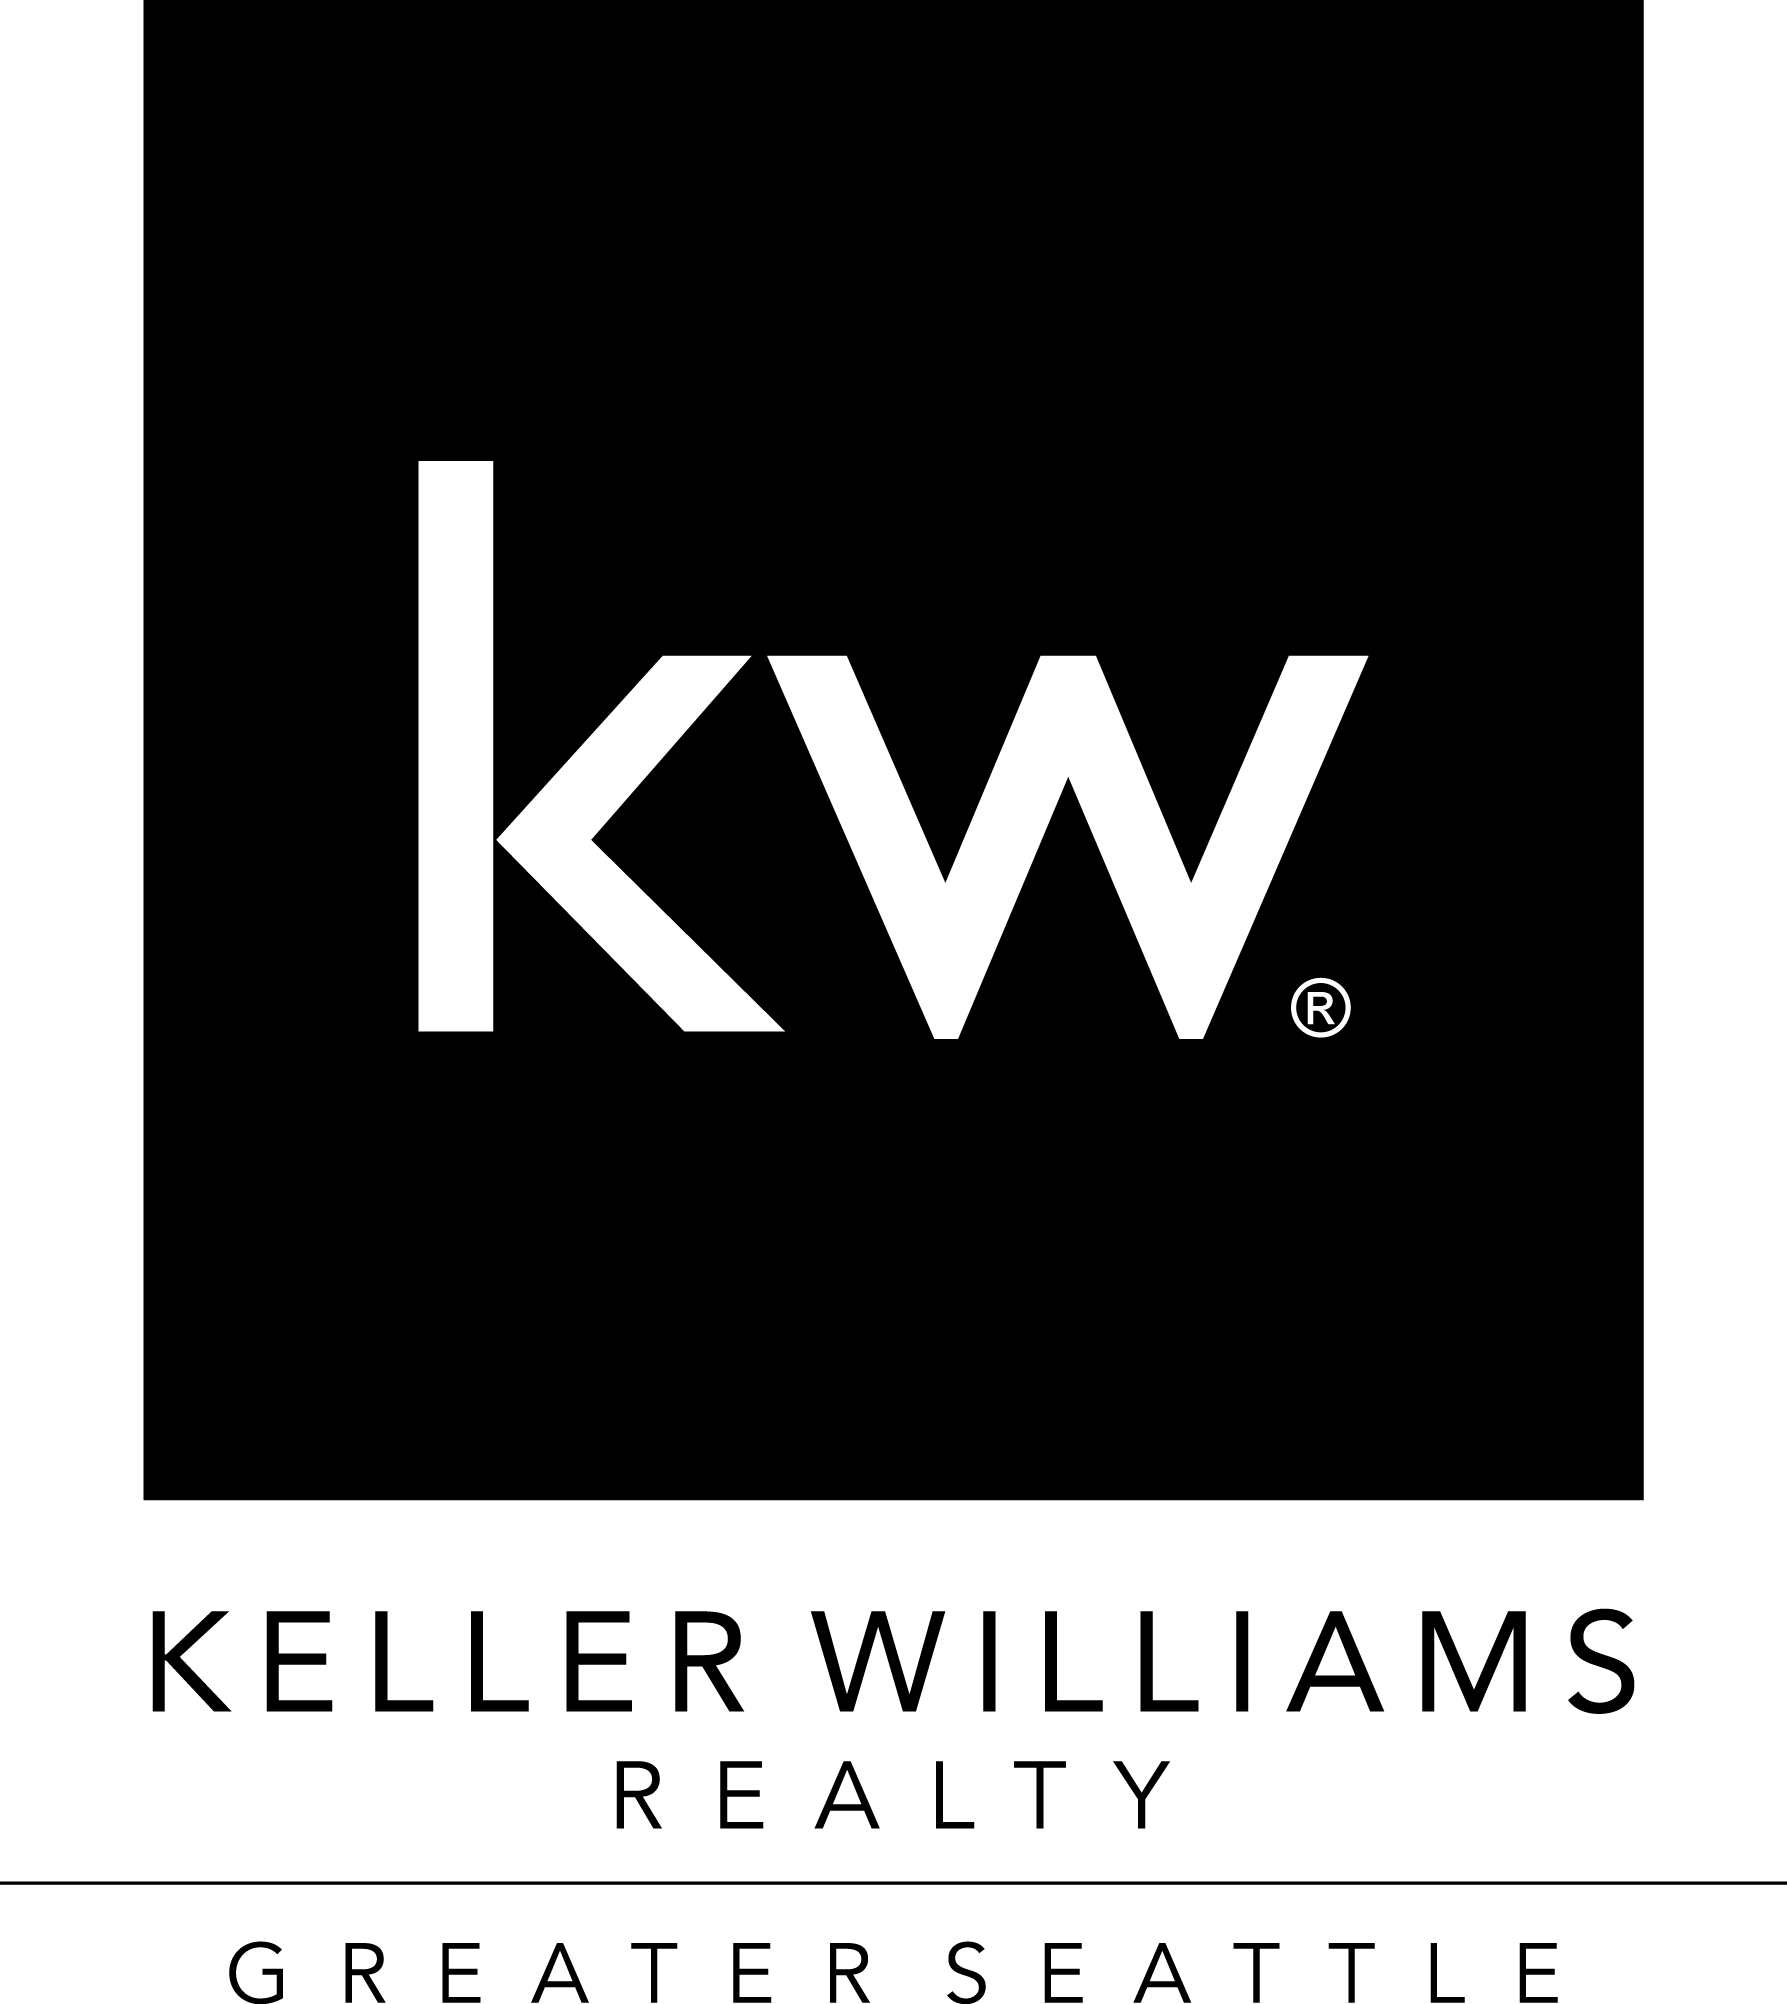 keller williams black emblem png logo #5149